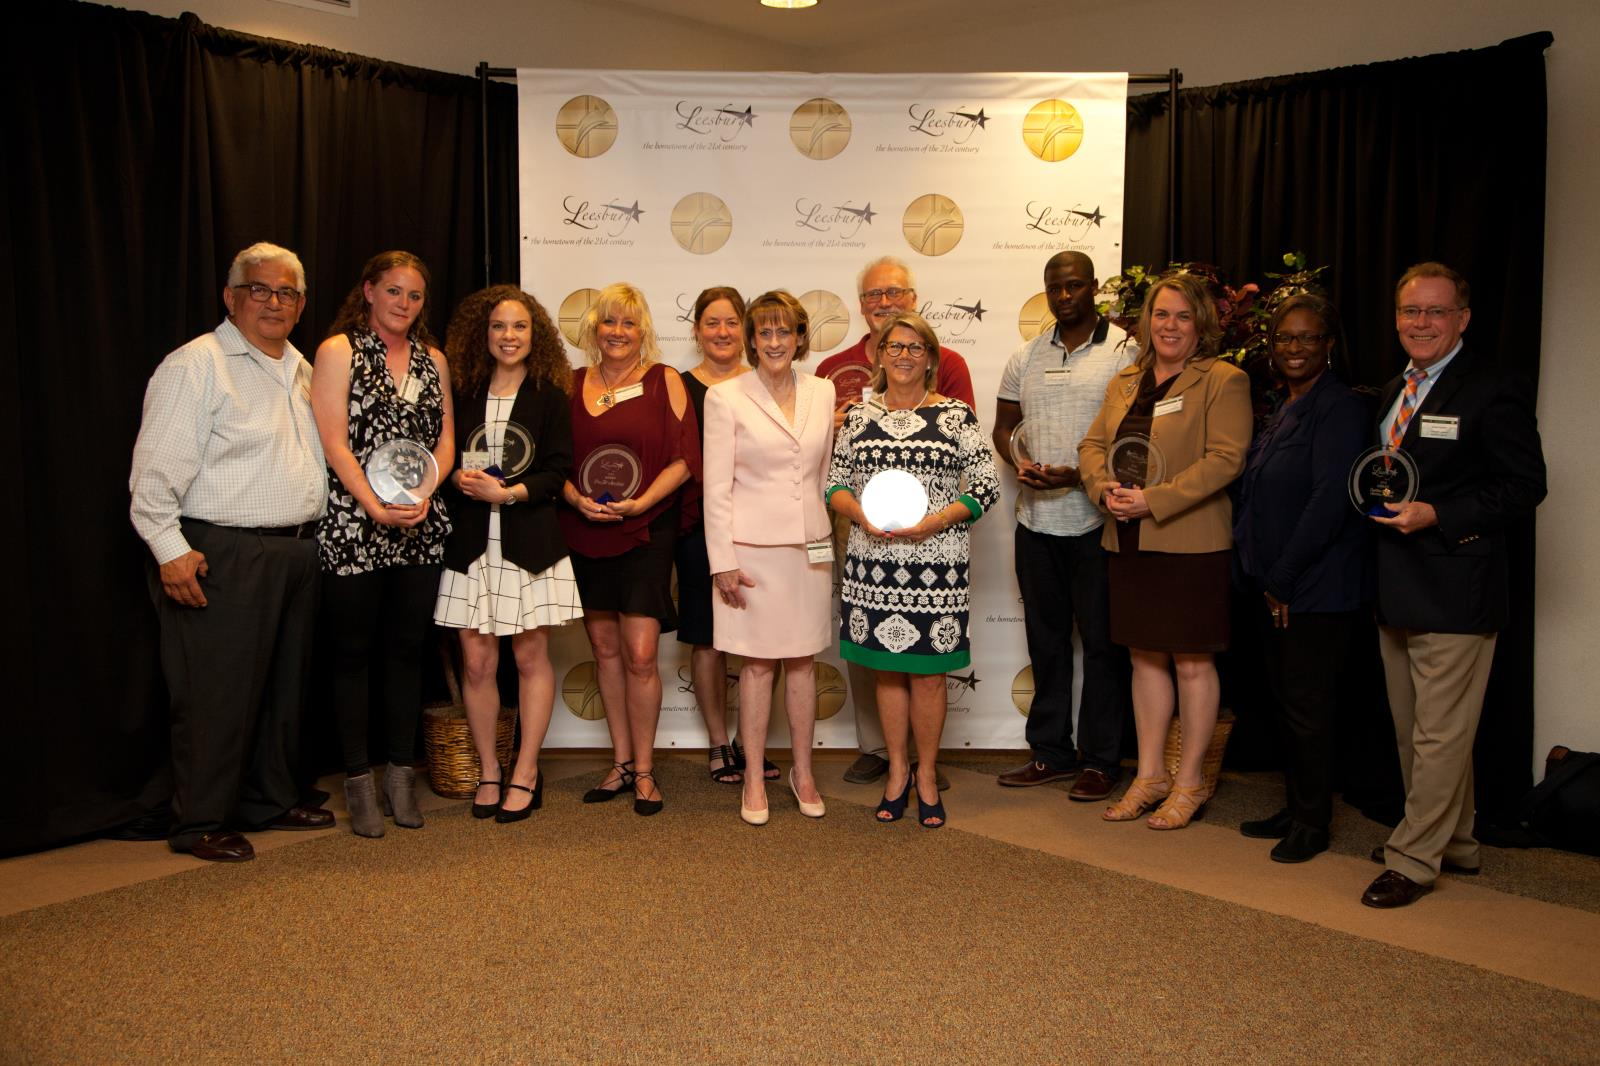 Award winners at the Leesburg Business Awards.